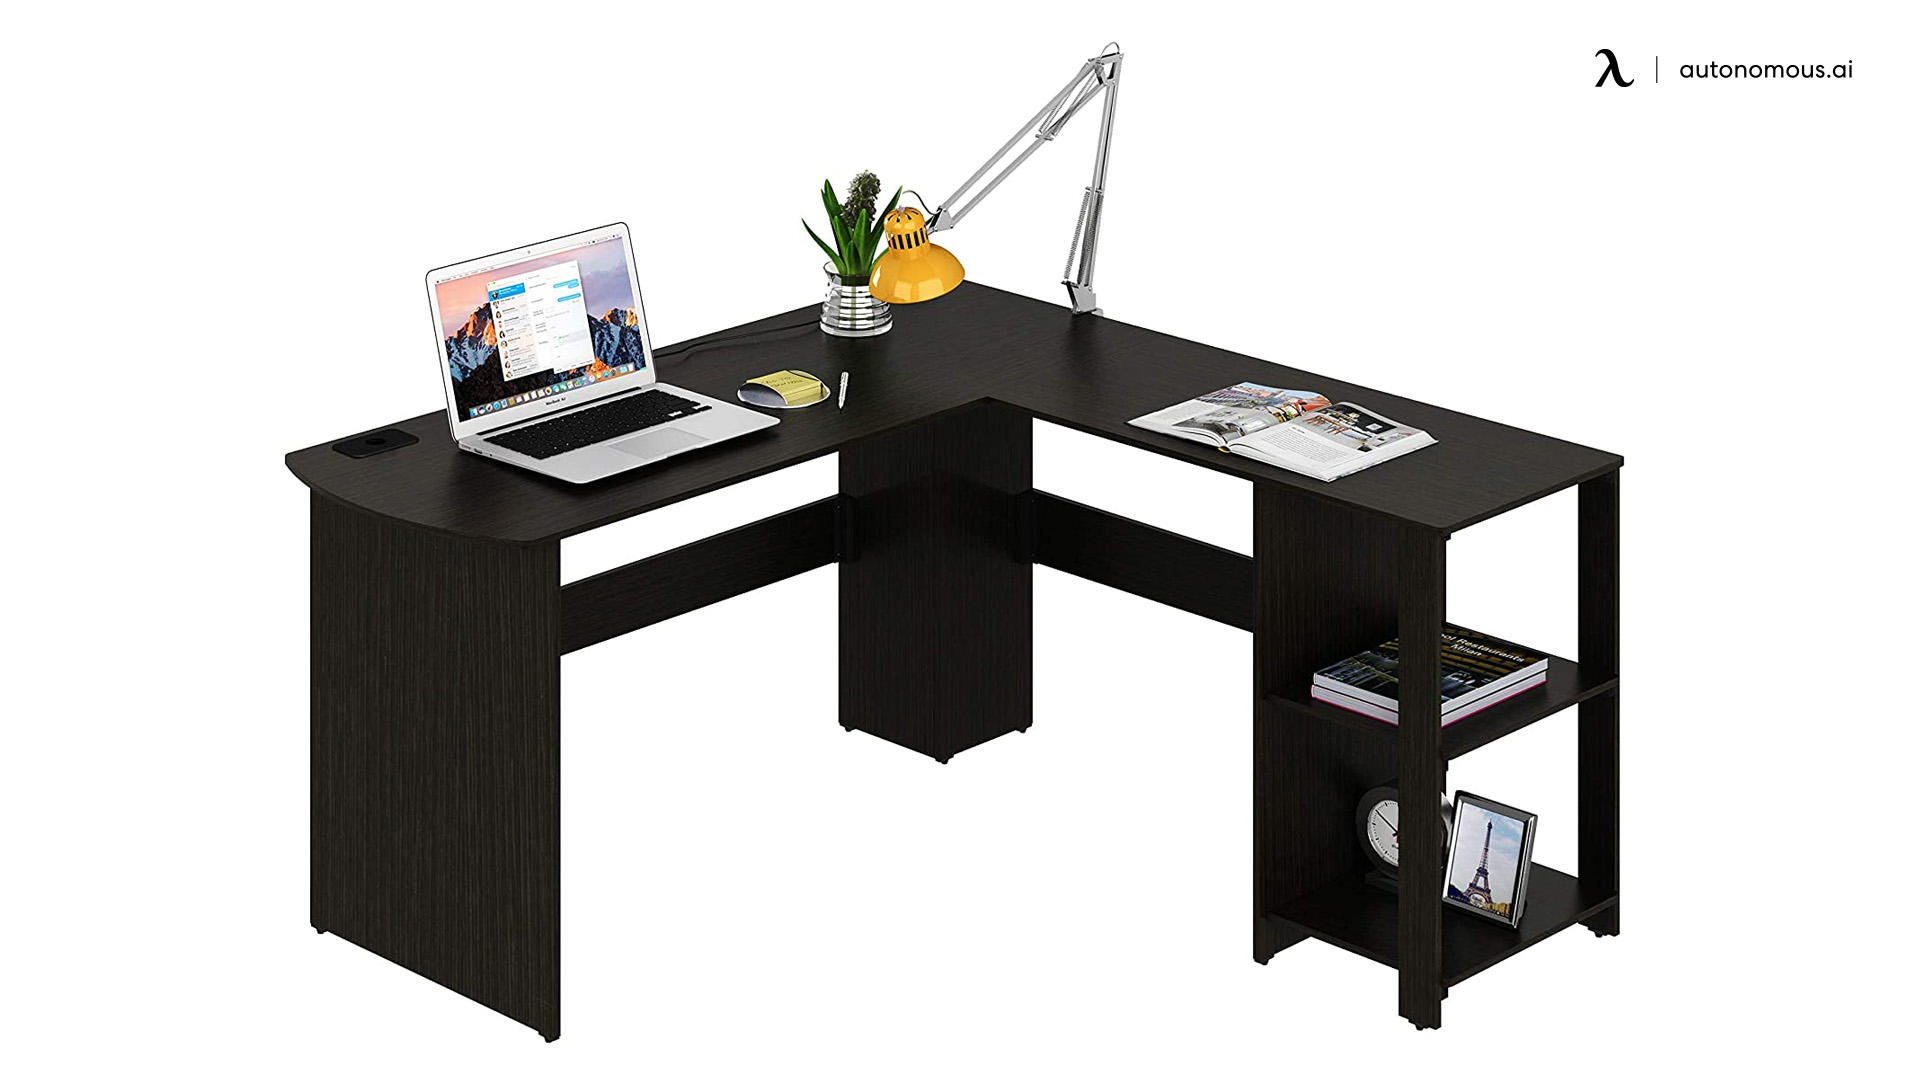 Engineered wood l-shaped desk from SHW